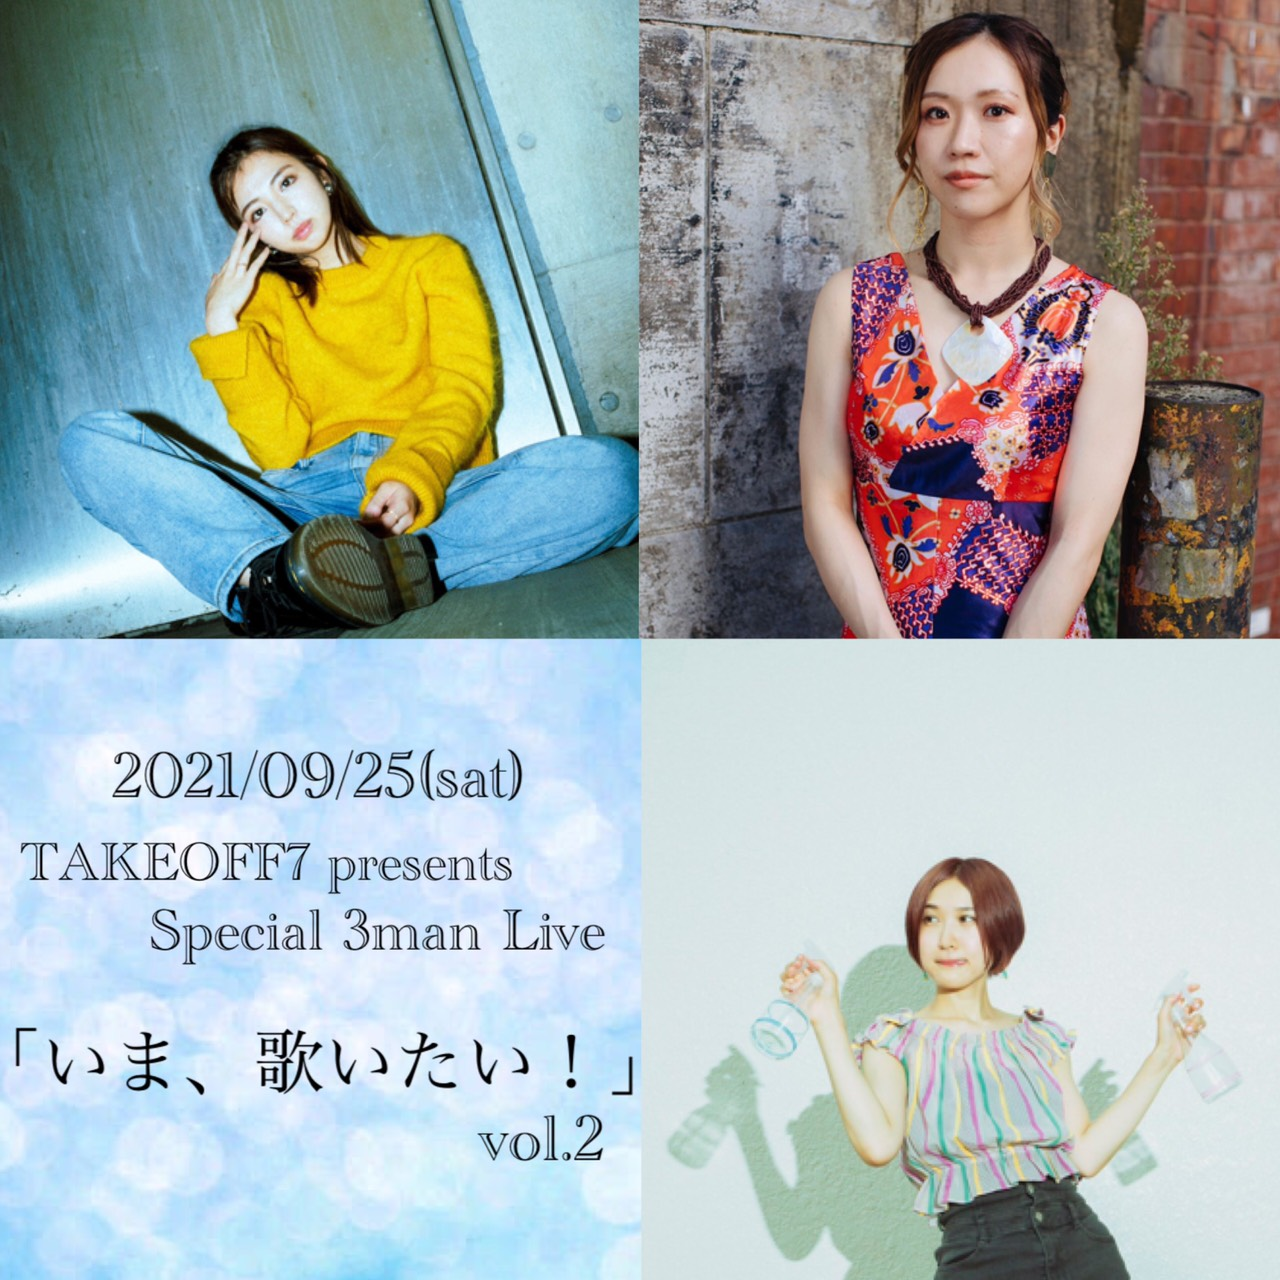 TAKEOFF7 presents Special 3man Live 「いま、歌いたい!」vol.2